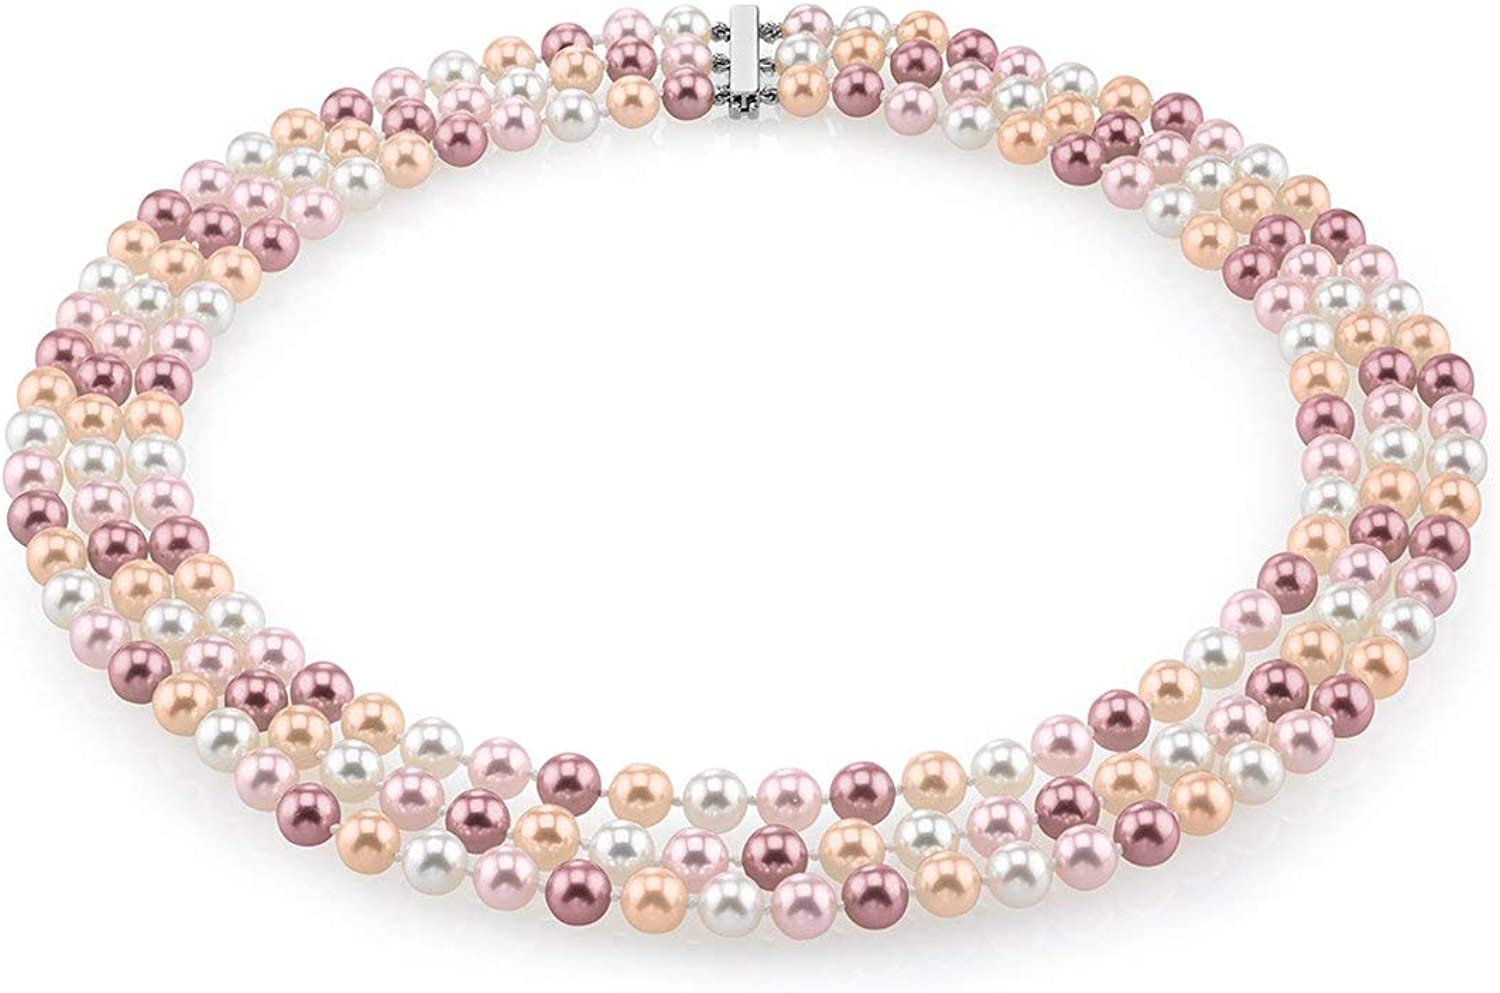 THE PEARL SOURCE 14K Gold AAAA Quality Round Multicolor Freshwater Cultured Pearl Triple Strand Necklace for Women in 18-20